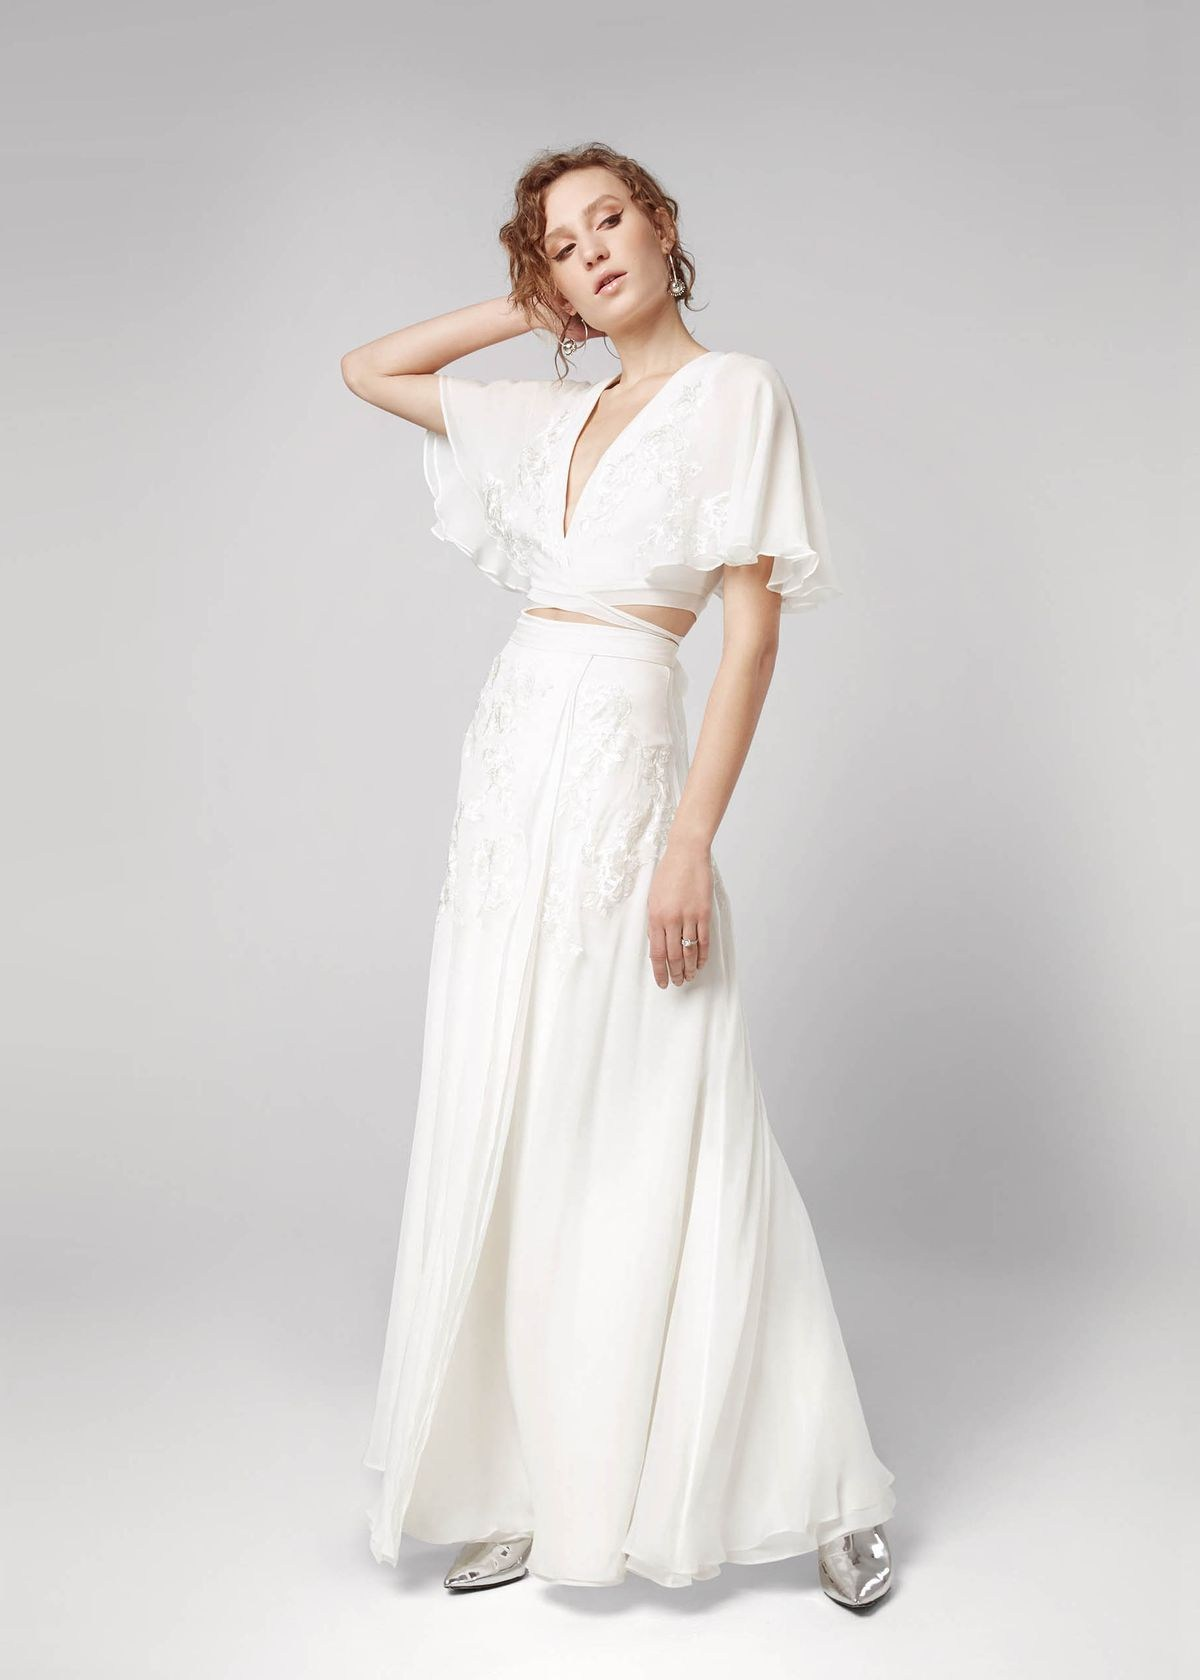 where to buy affordable wedding dresses photo - 1